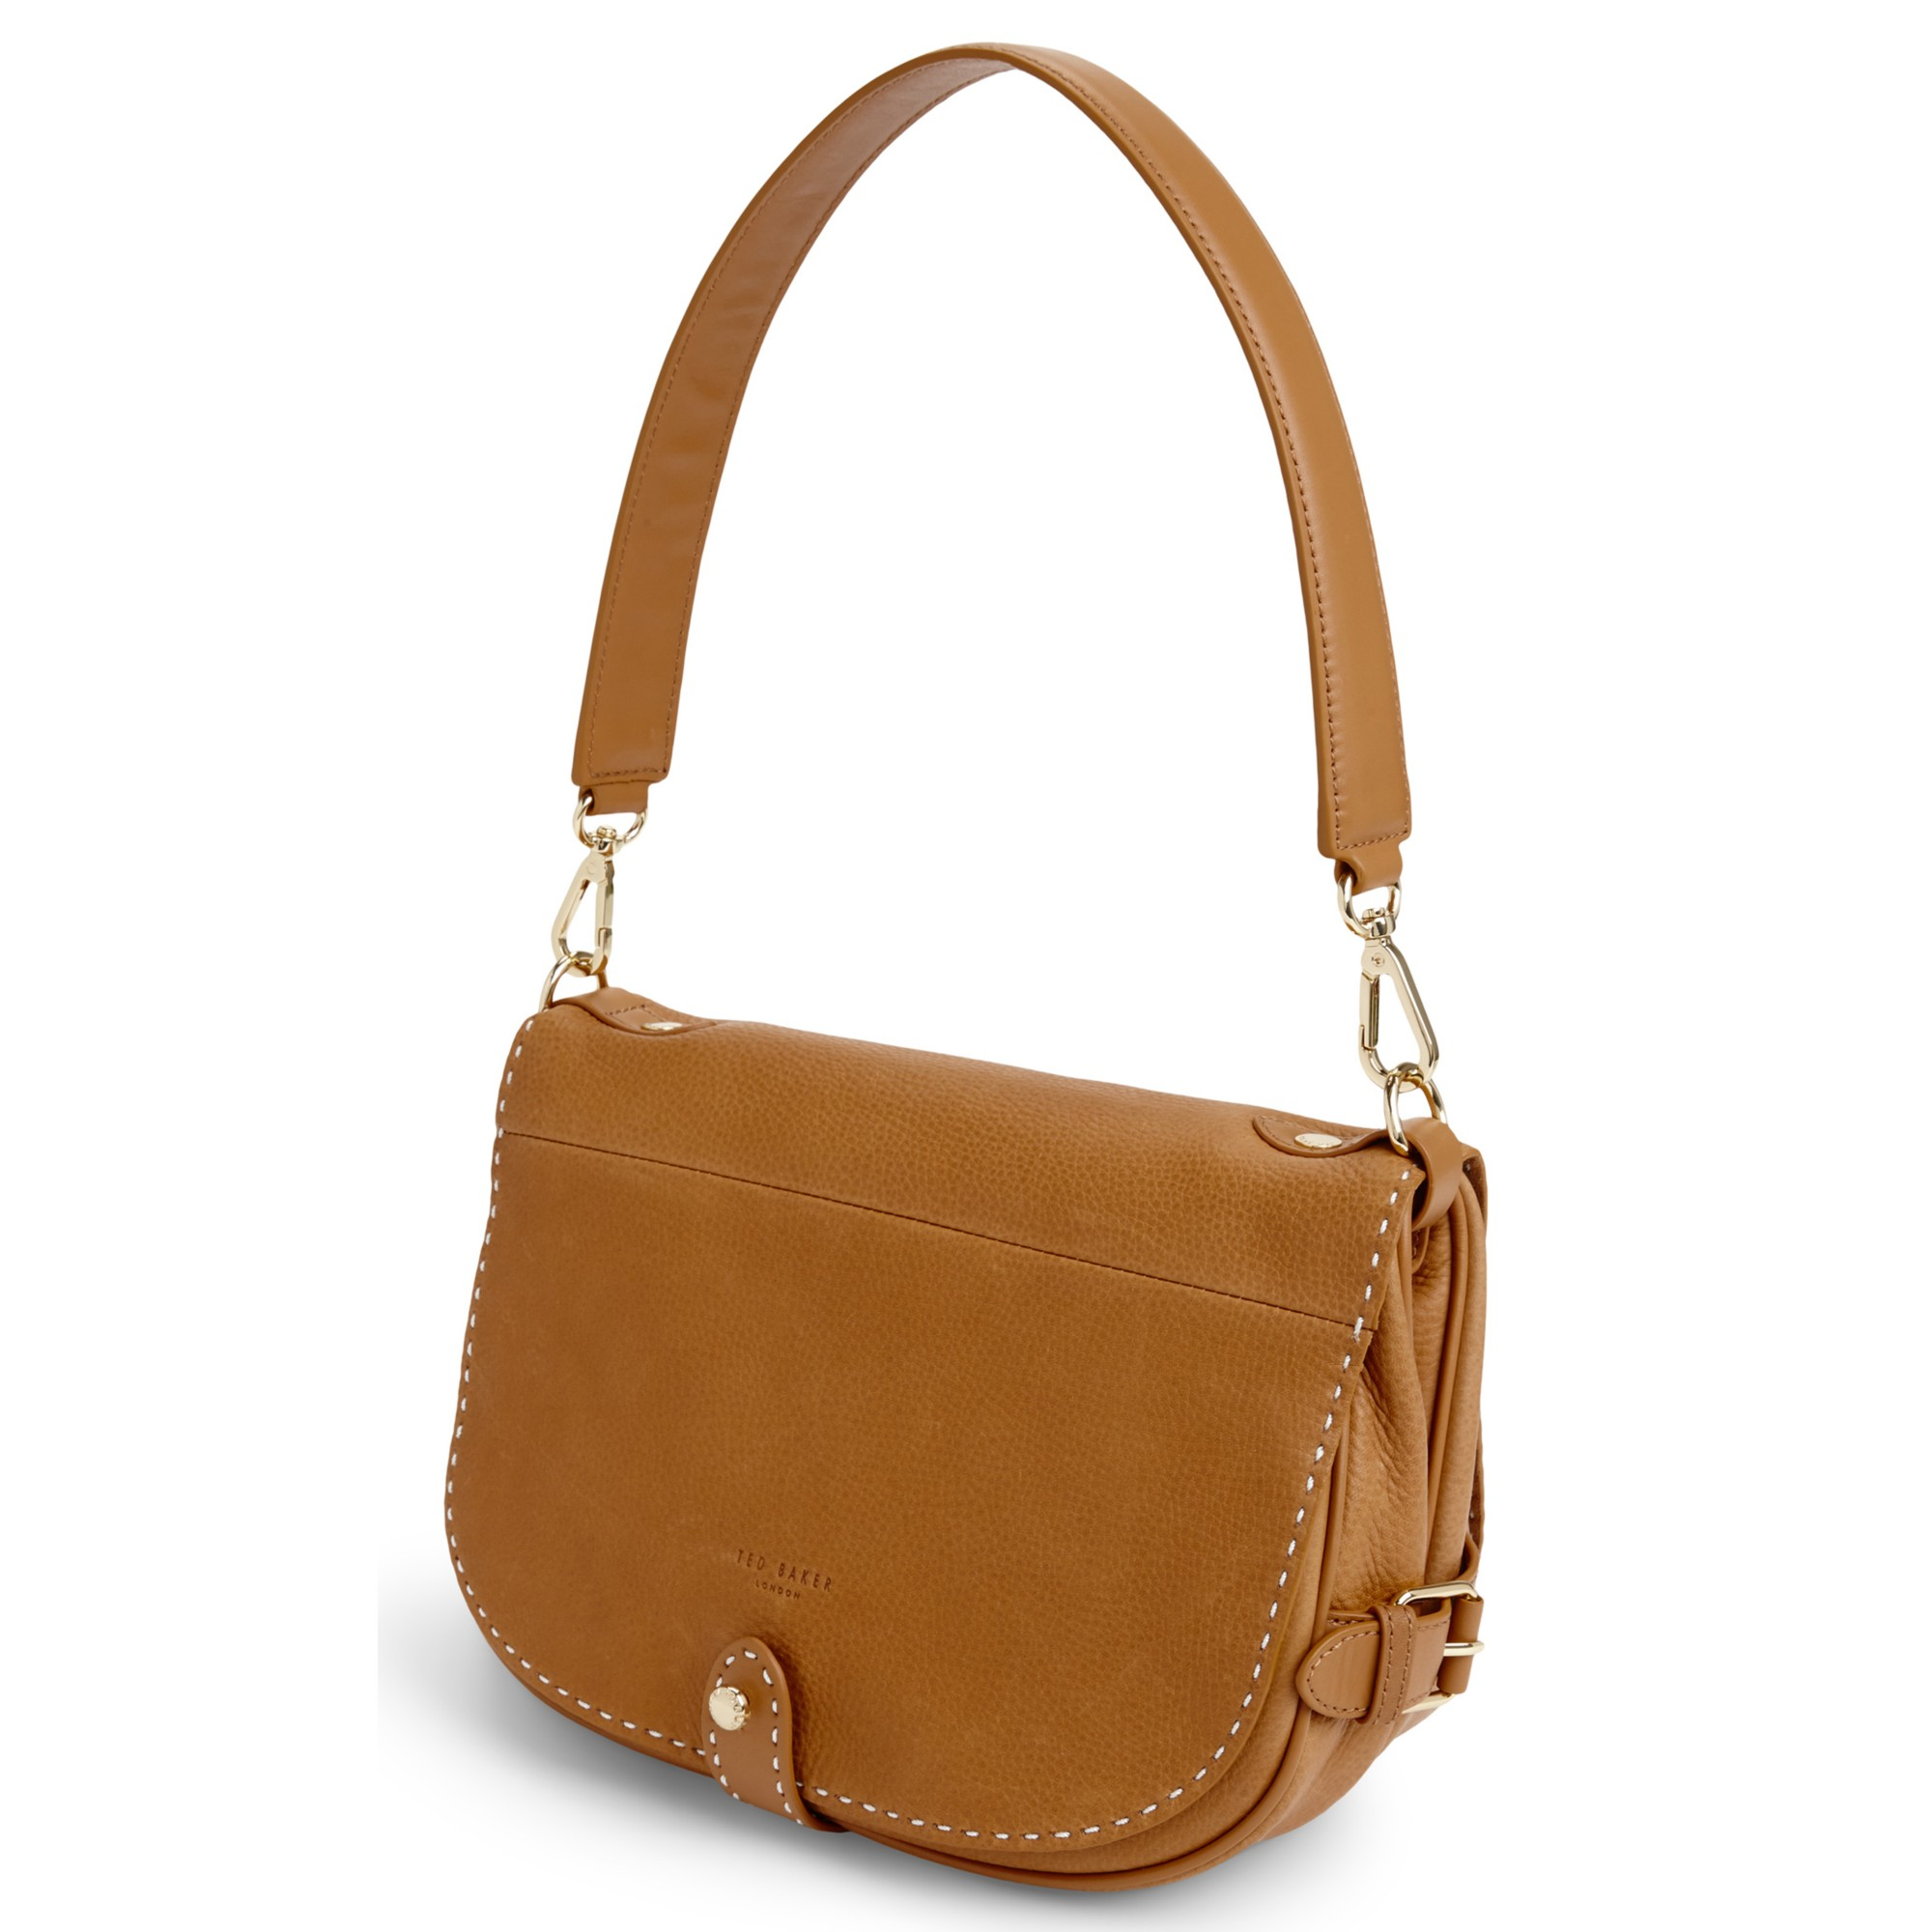 376a2d86a1e3 Ted Baker Leather Stab Stitch Saddle Shoulder Bag in Brown - Lyst